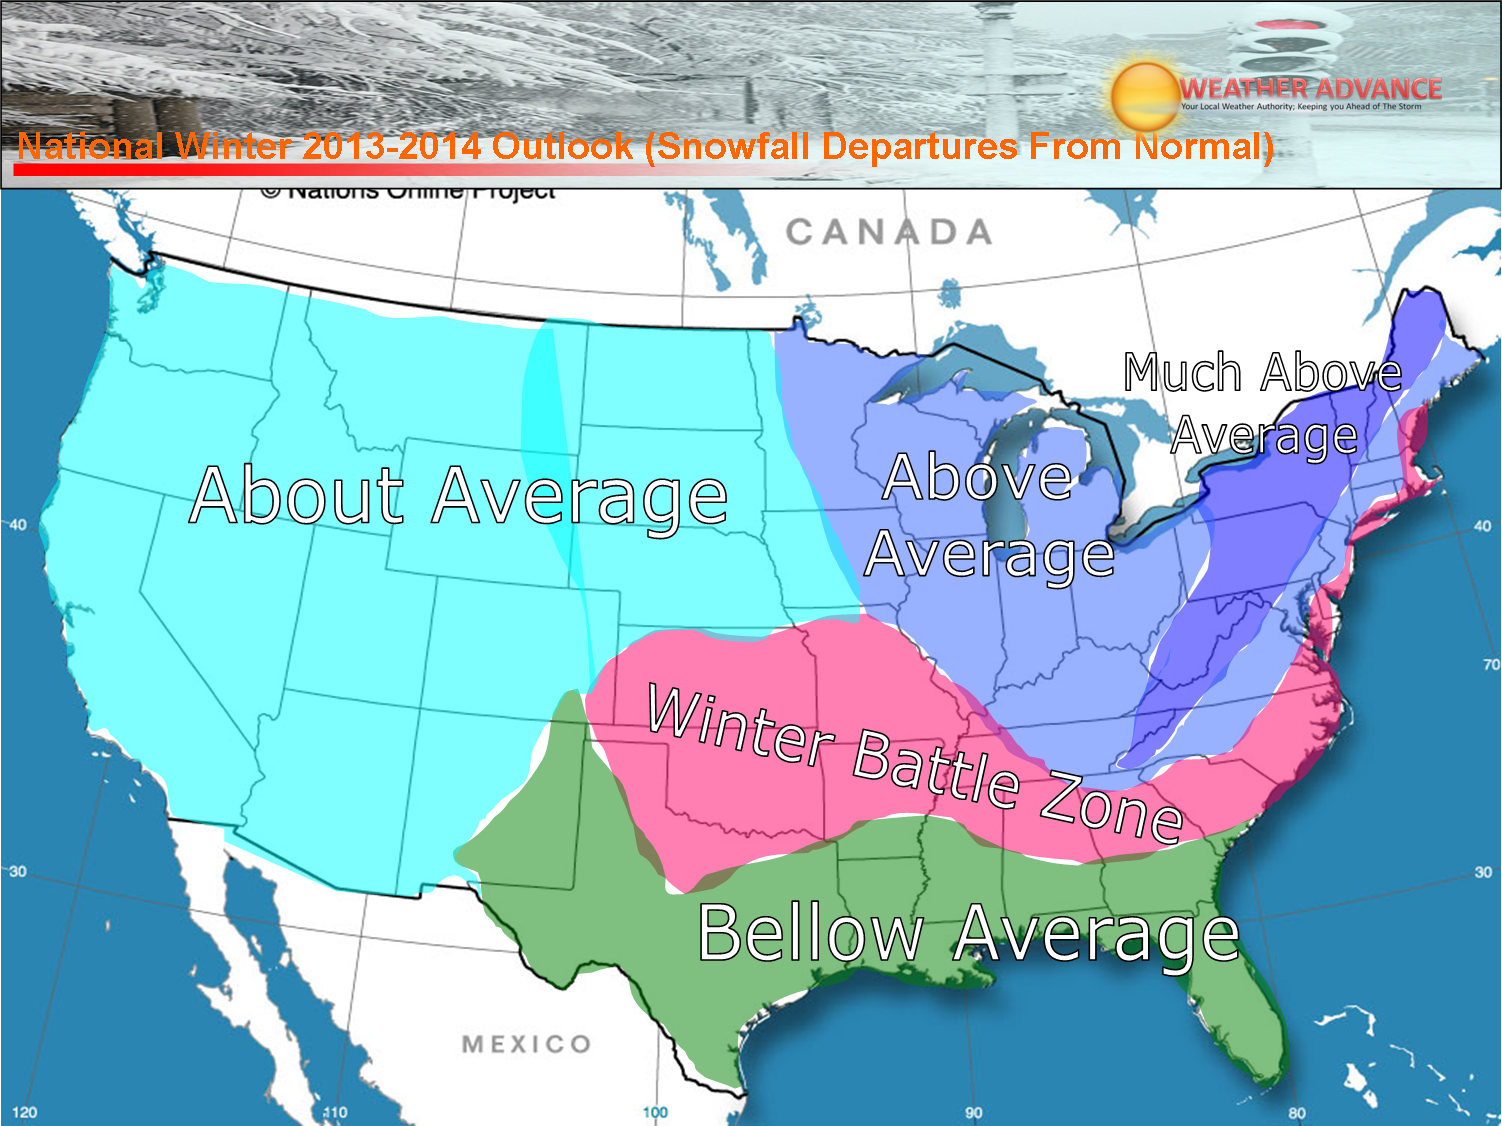 2013-2014 Snow Forecast for Wisconsin